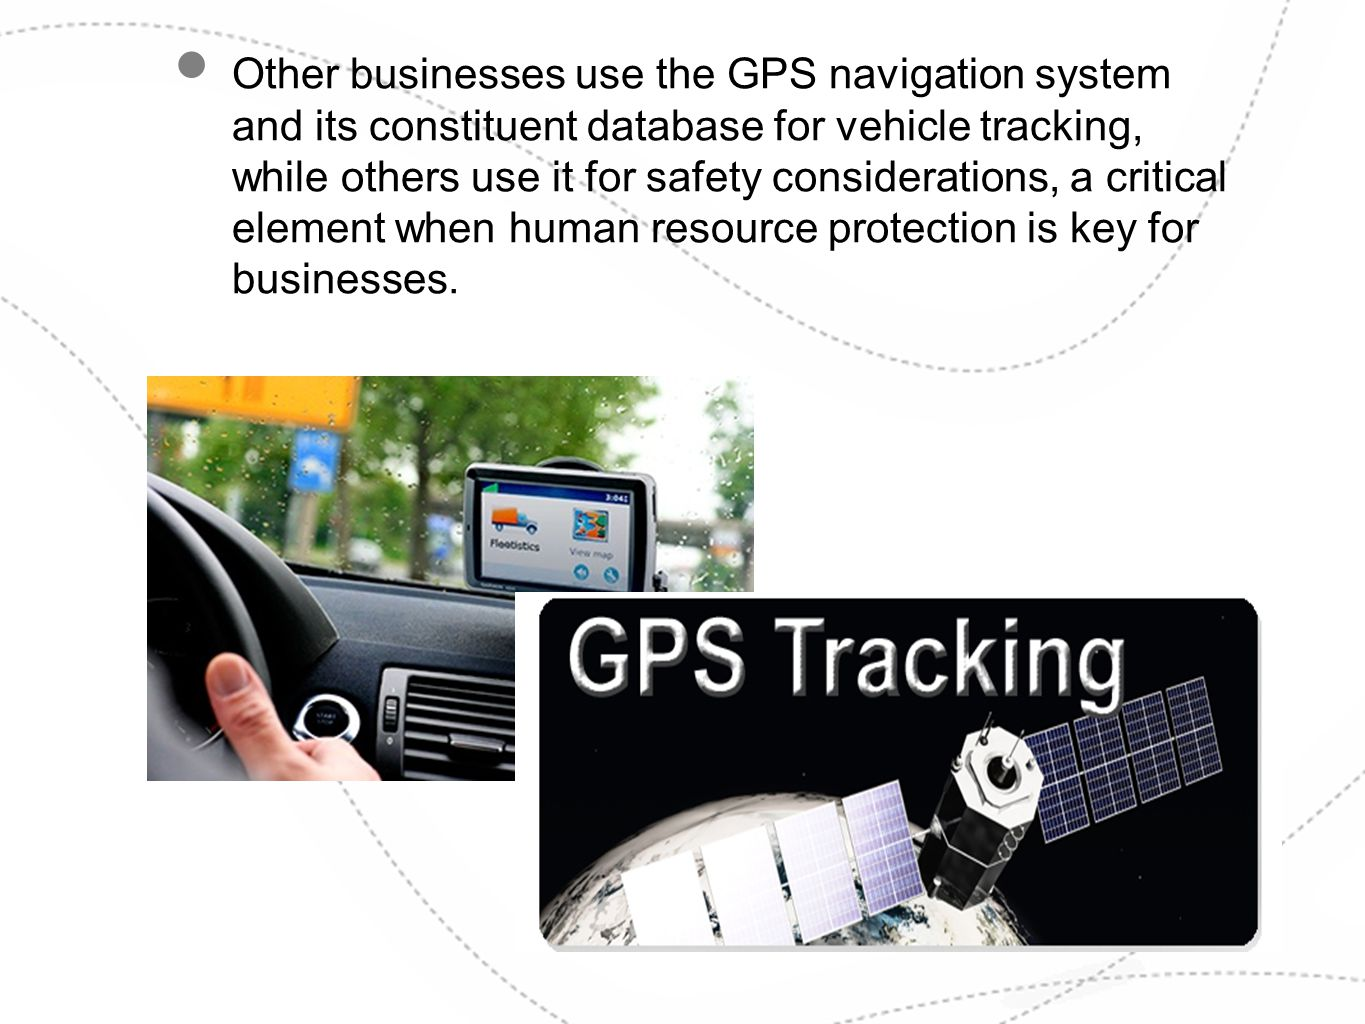 Other businesses use the GPS navigation system and its constituent database for vehicle tracking, while others use it for safety considerations, a cri